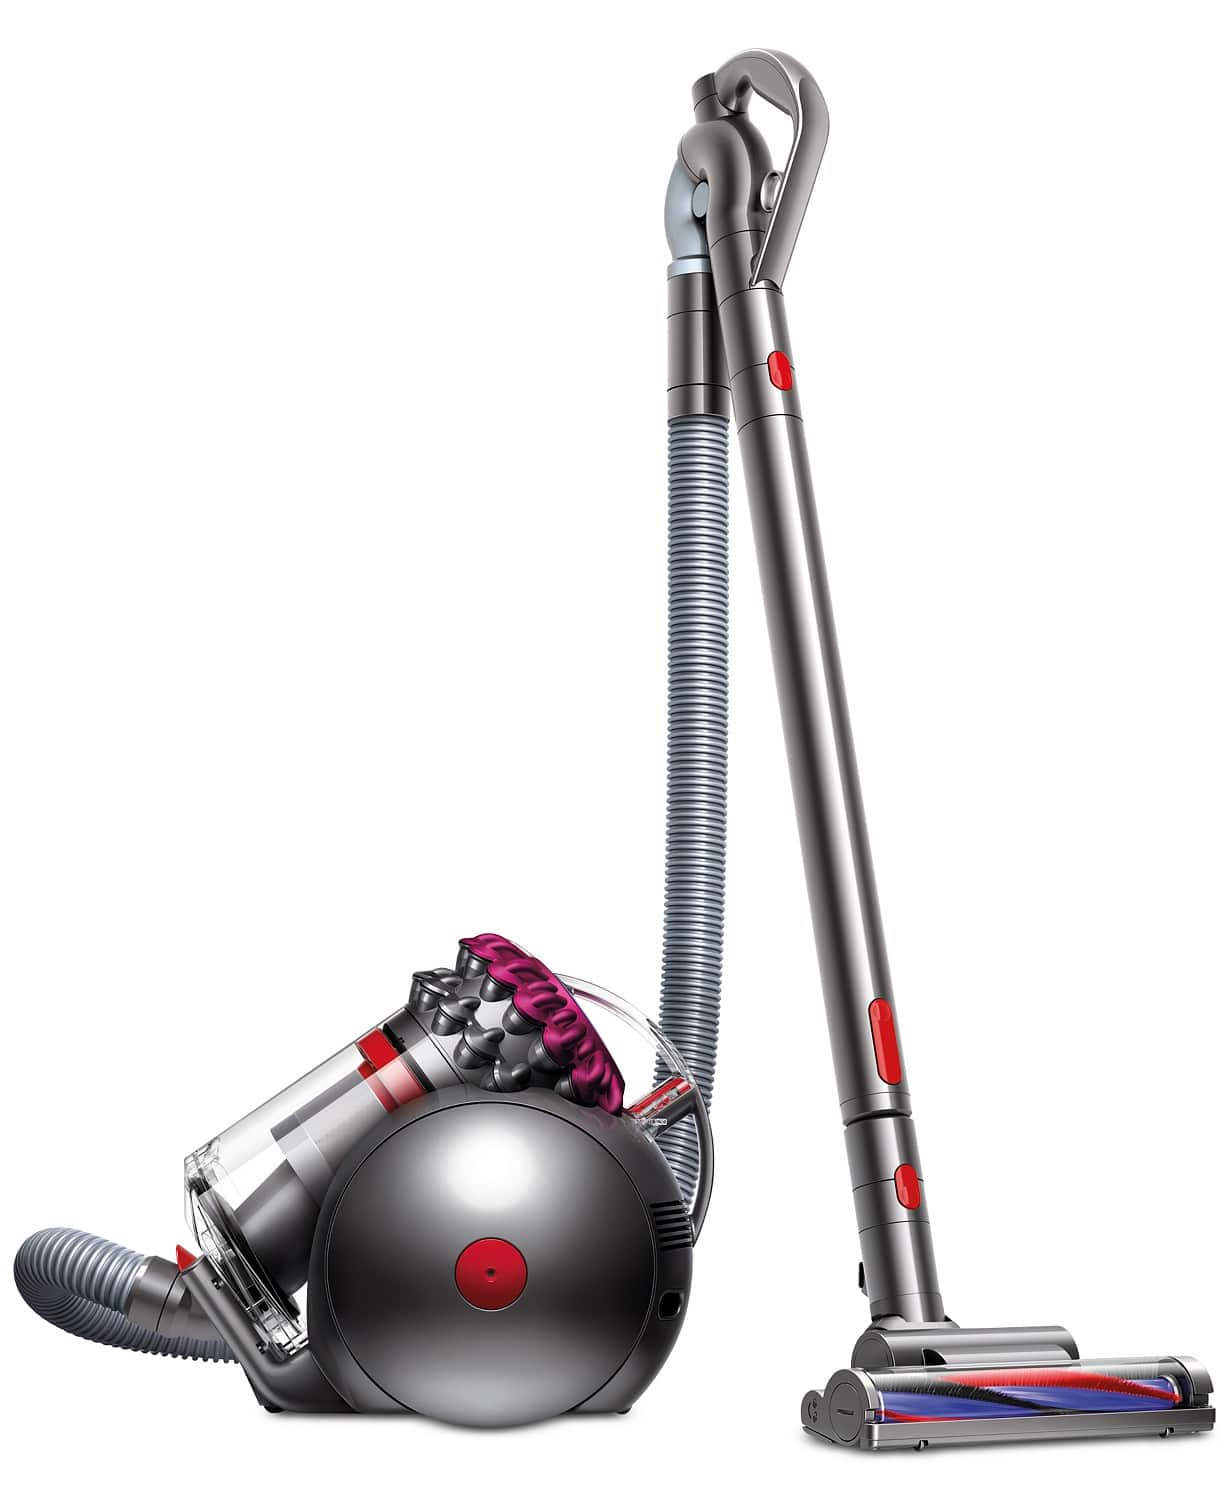 Dyson Big Ball Multi-Floor Pro Canister Vacuum $249